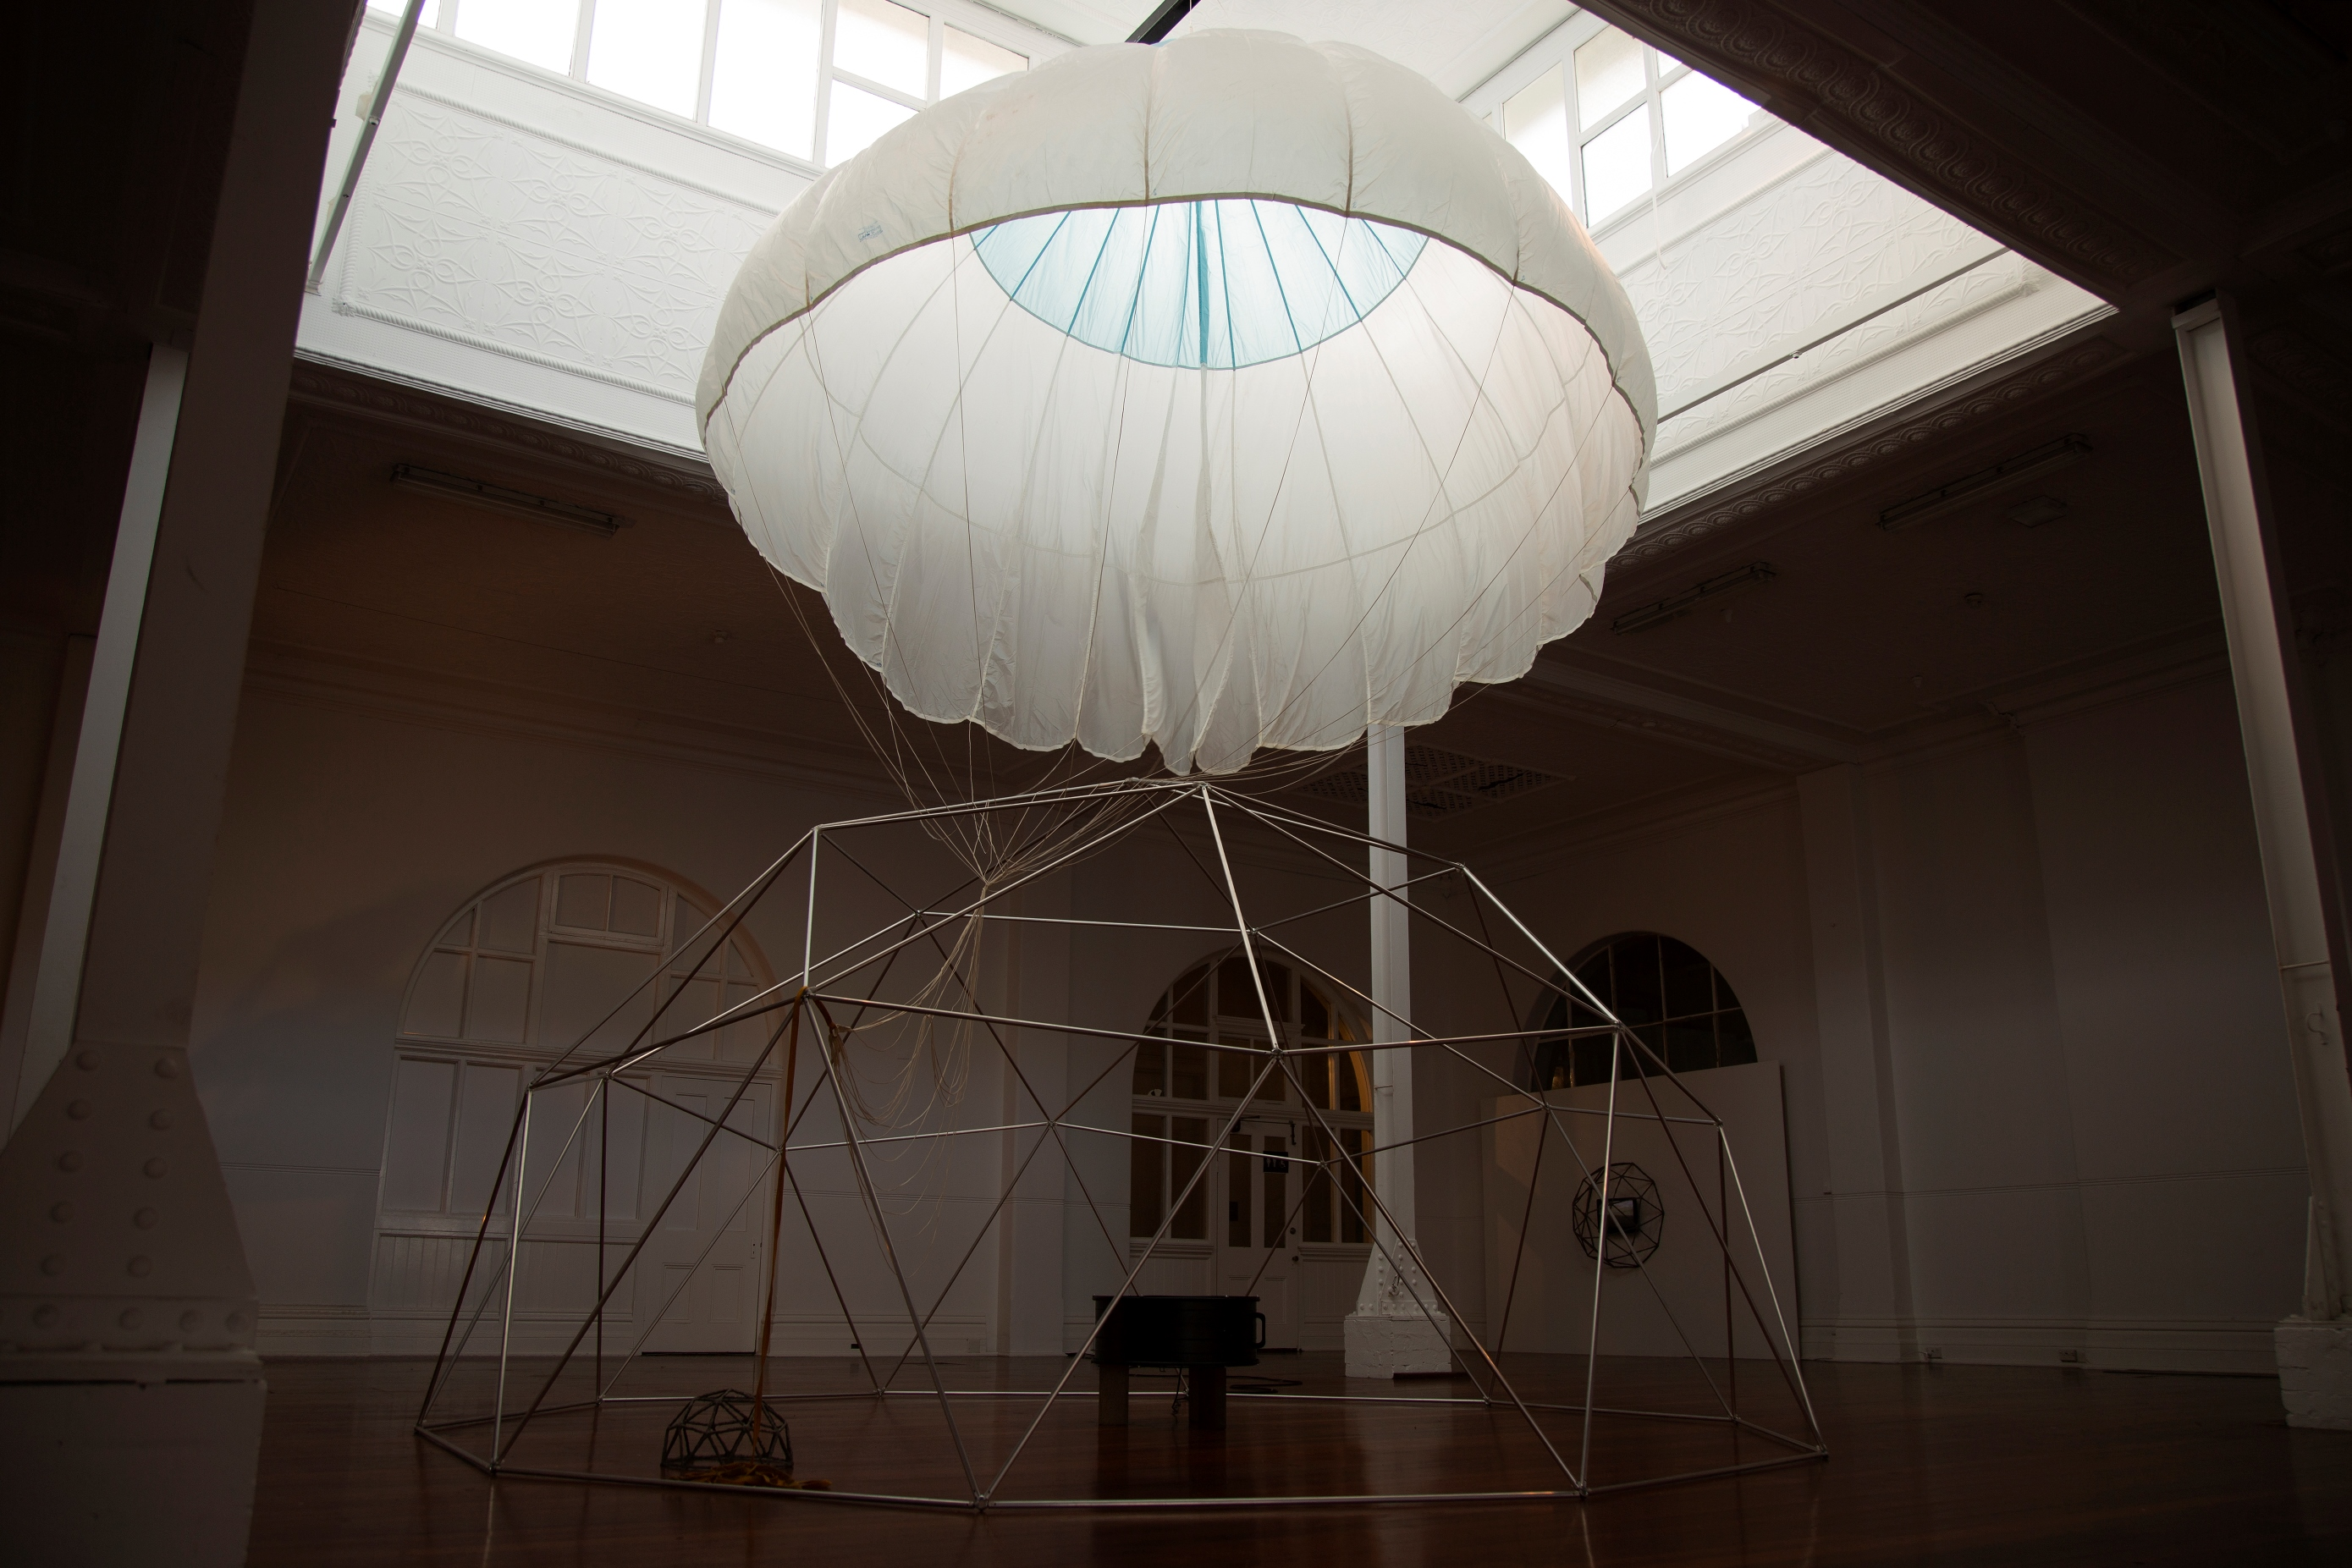 A photograph of an art installation created by Amy Perejuan-Capone. A white parachute is inflated and hovering over an dome metal structure which encloses another metal dome within is boundaries.